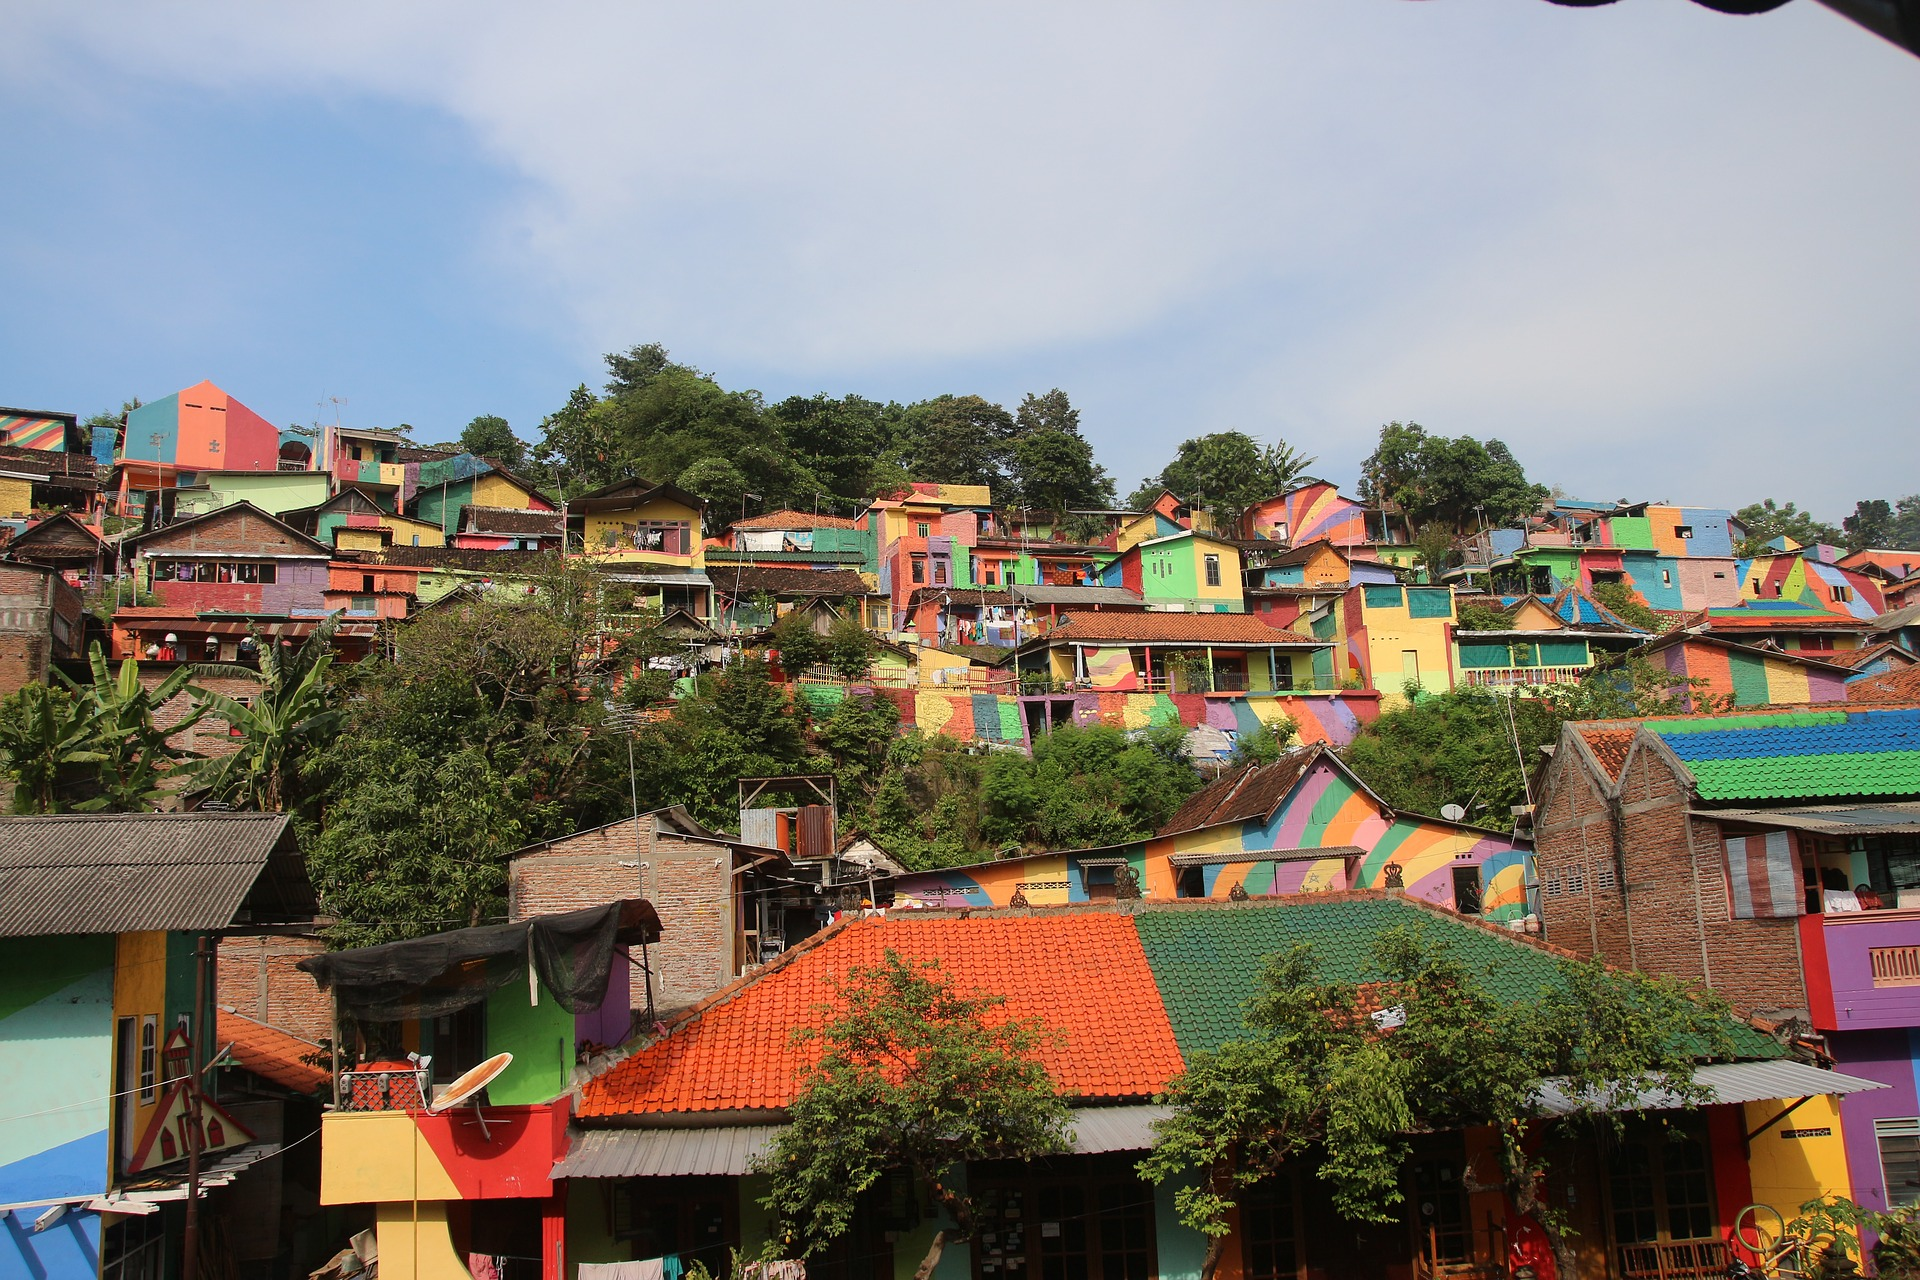 Colorful rainbow painted village